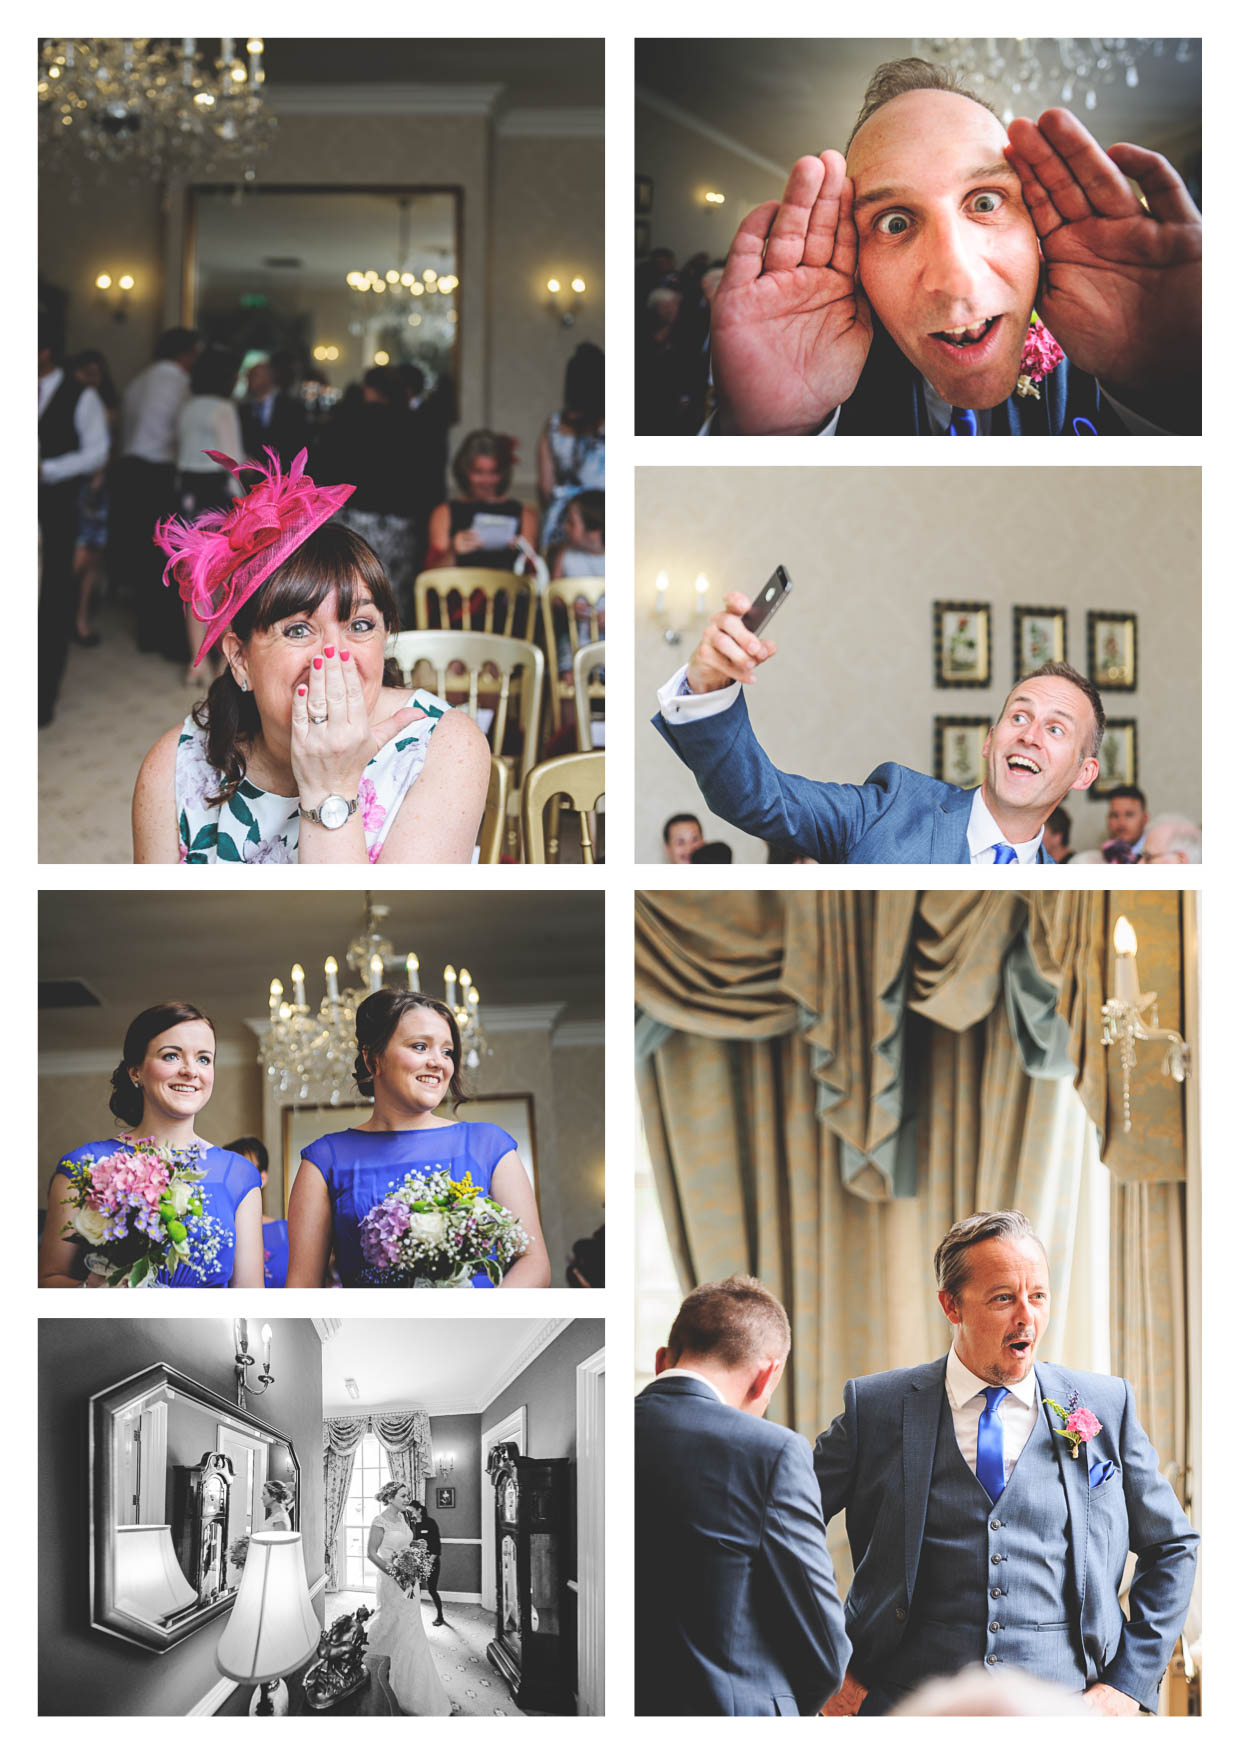 Photographs of the groom and bridesmaids before a wedding service at decourceys manor in cardiff